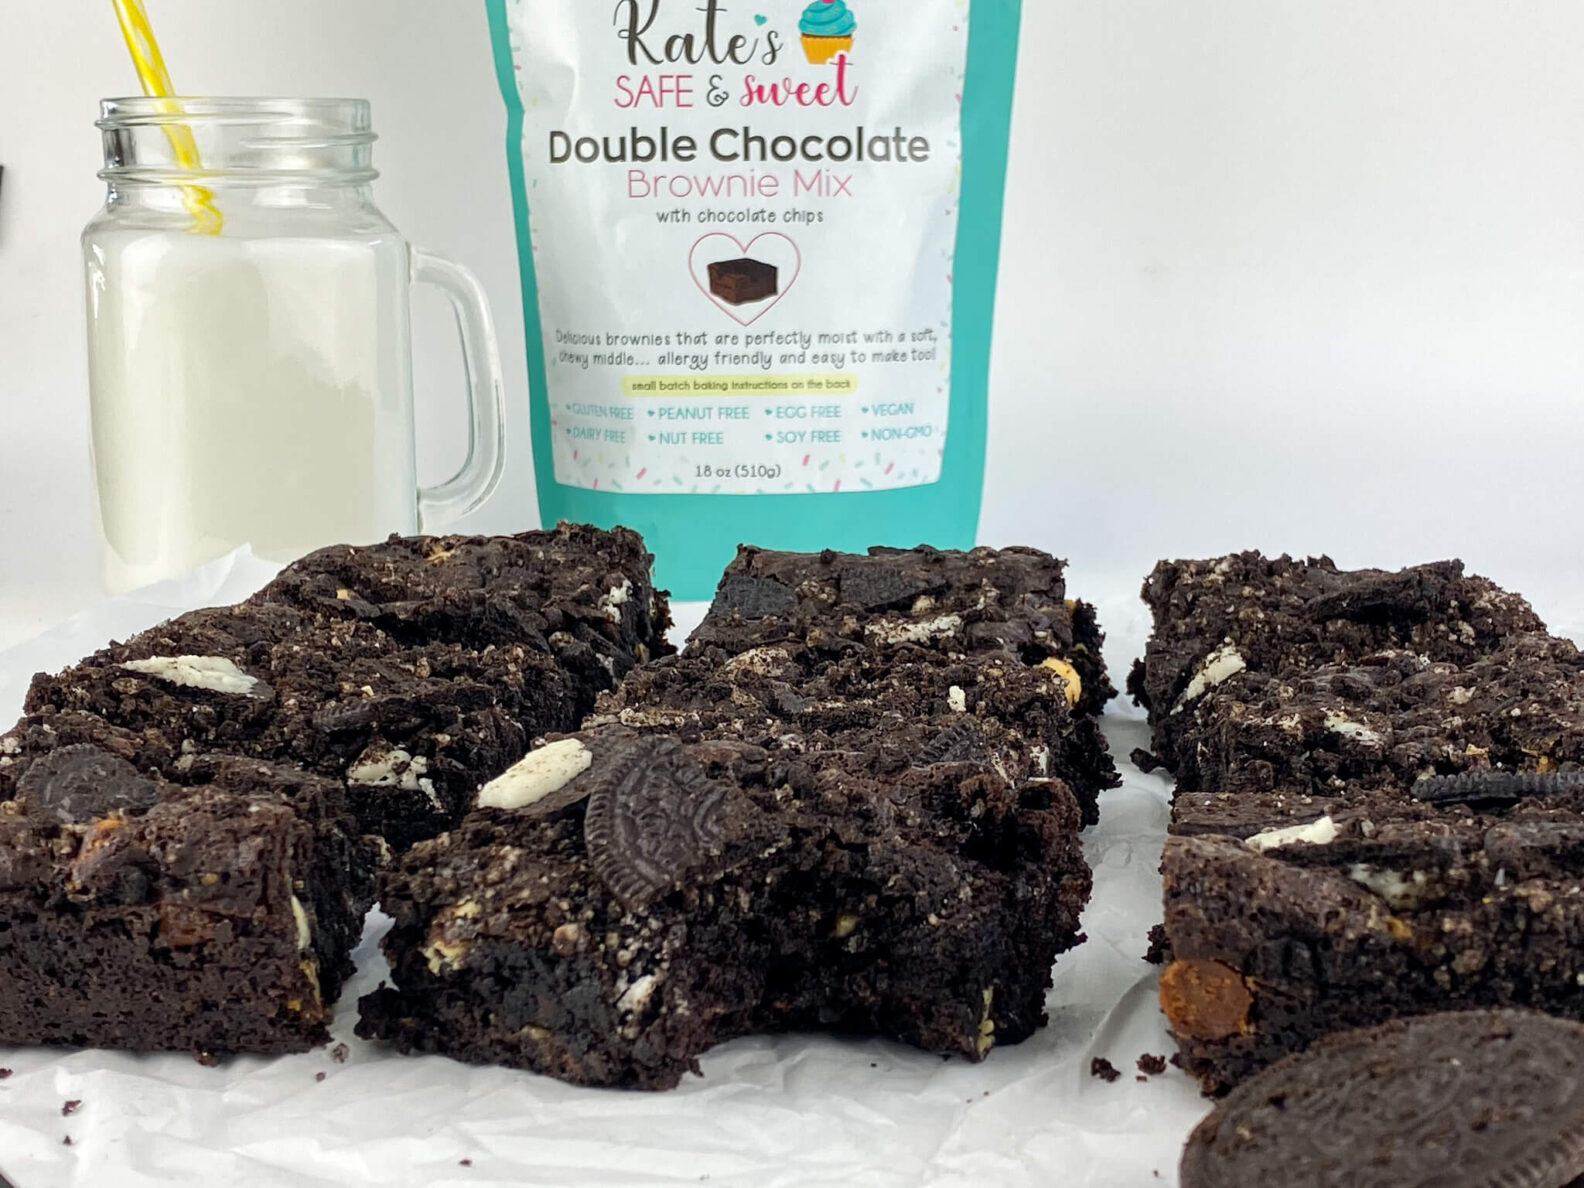 Kate's Safe and Sweet - Chocolate Sandwich Cookie Brownies with Mix